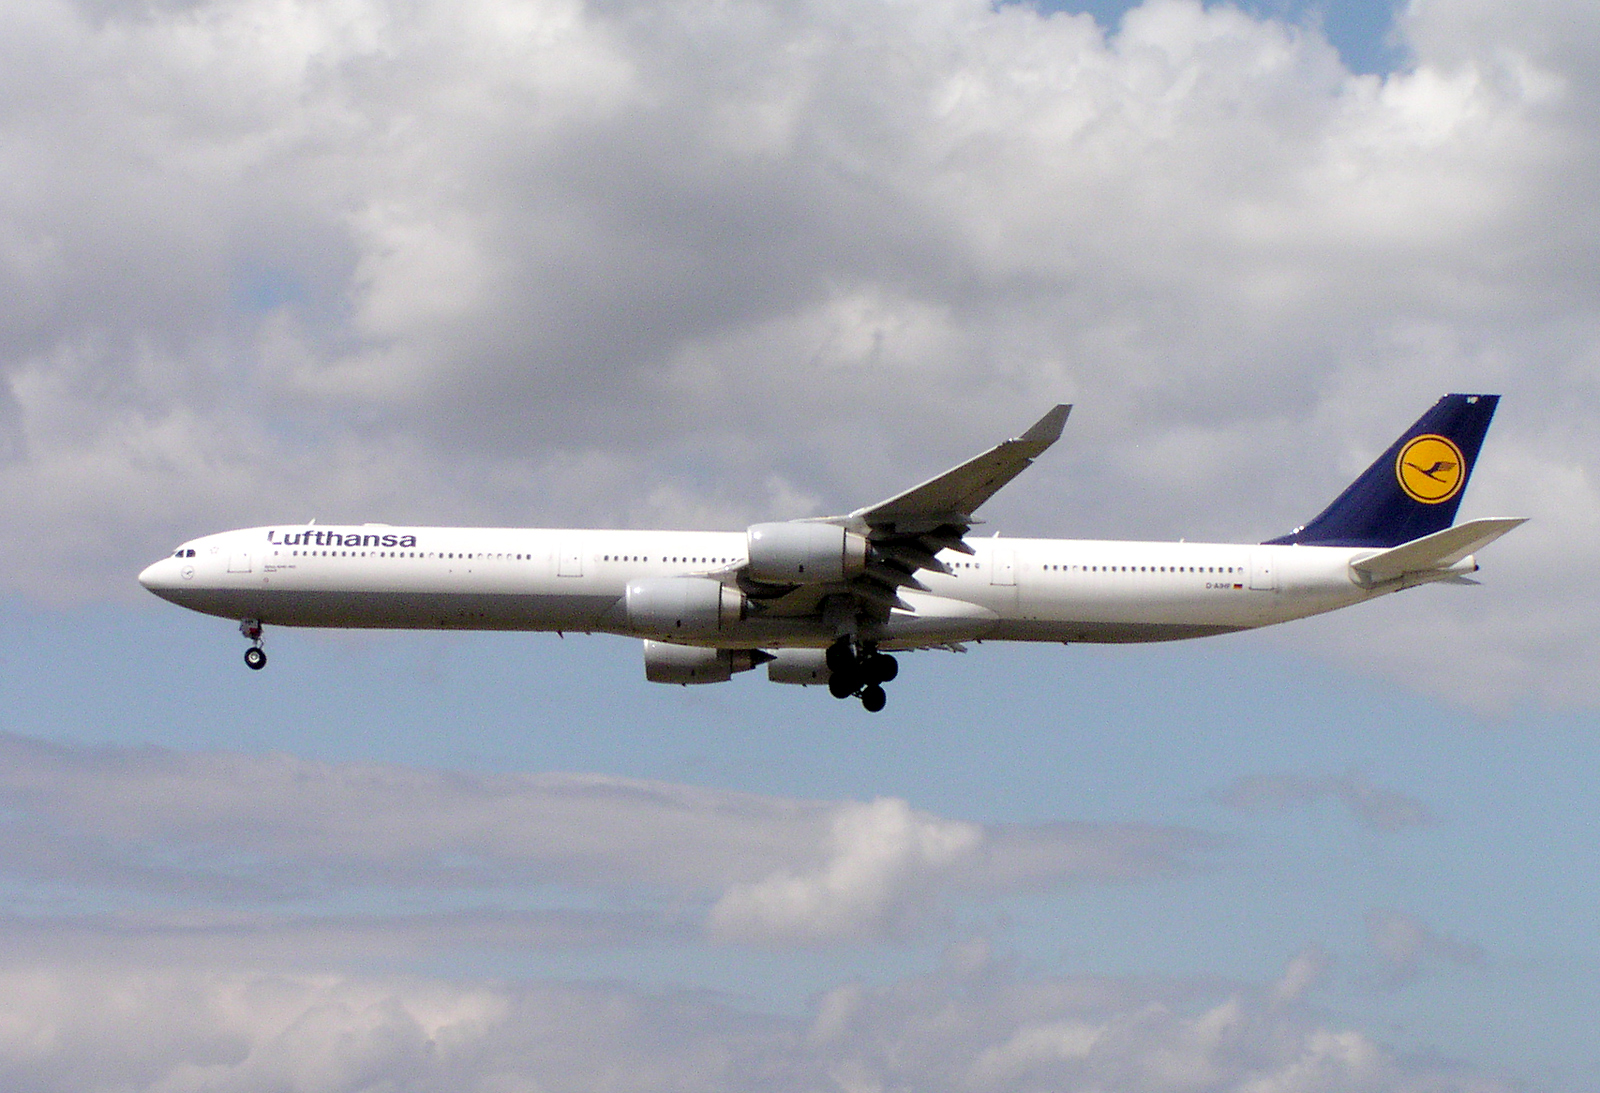 Airbus A340-500/600 #7